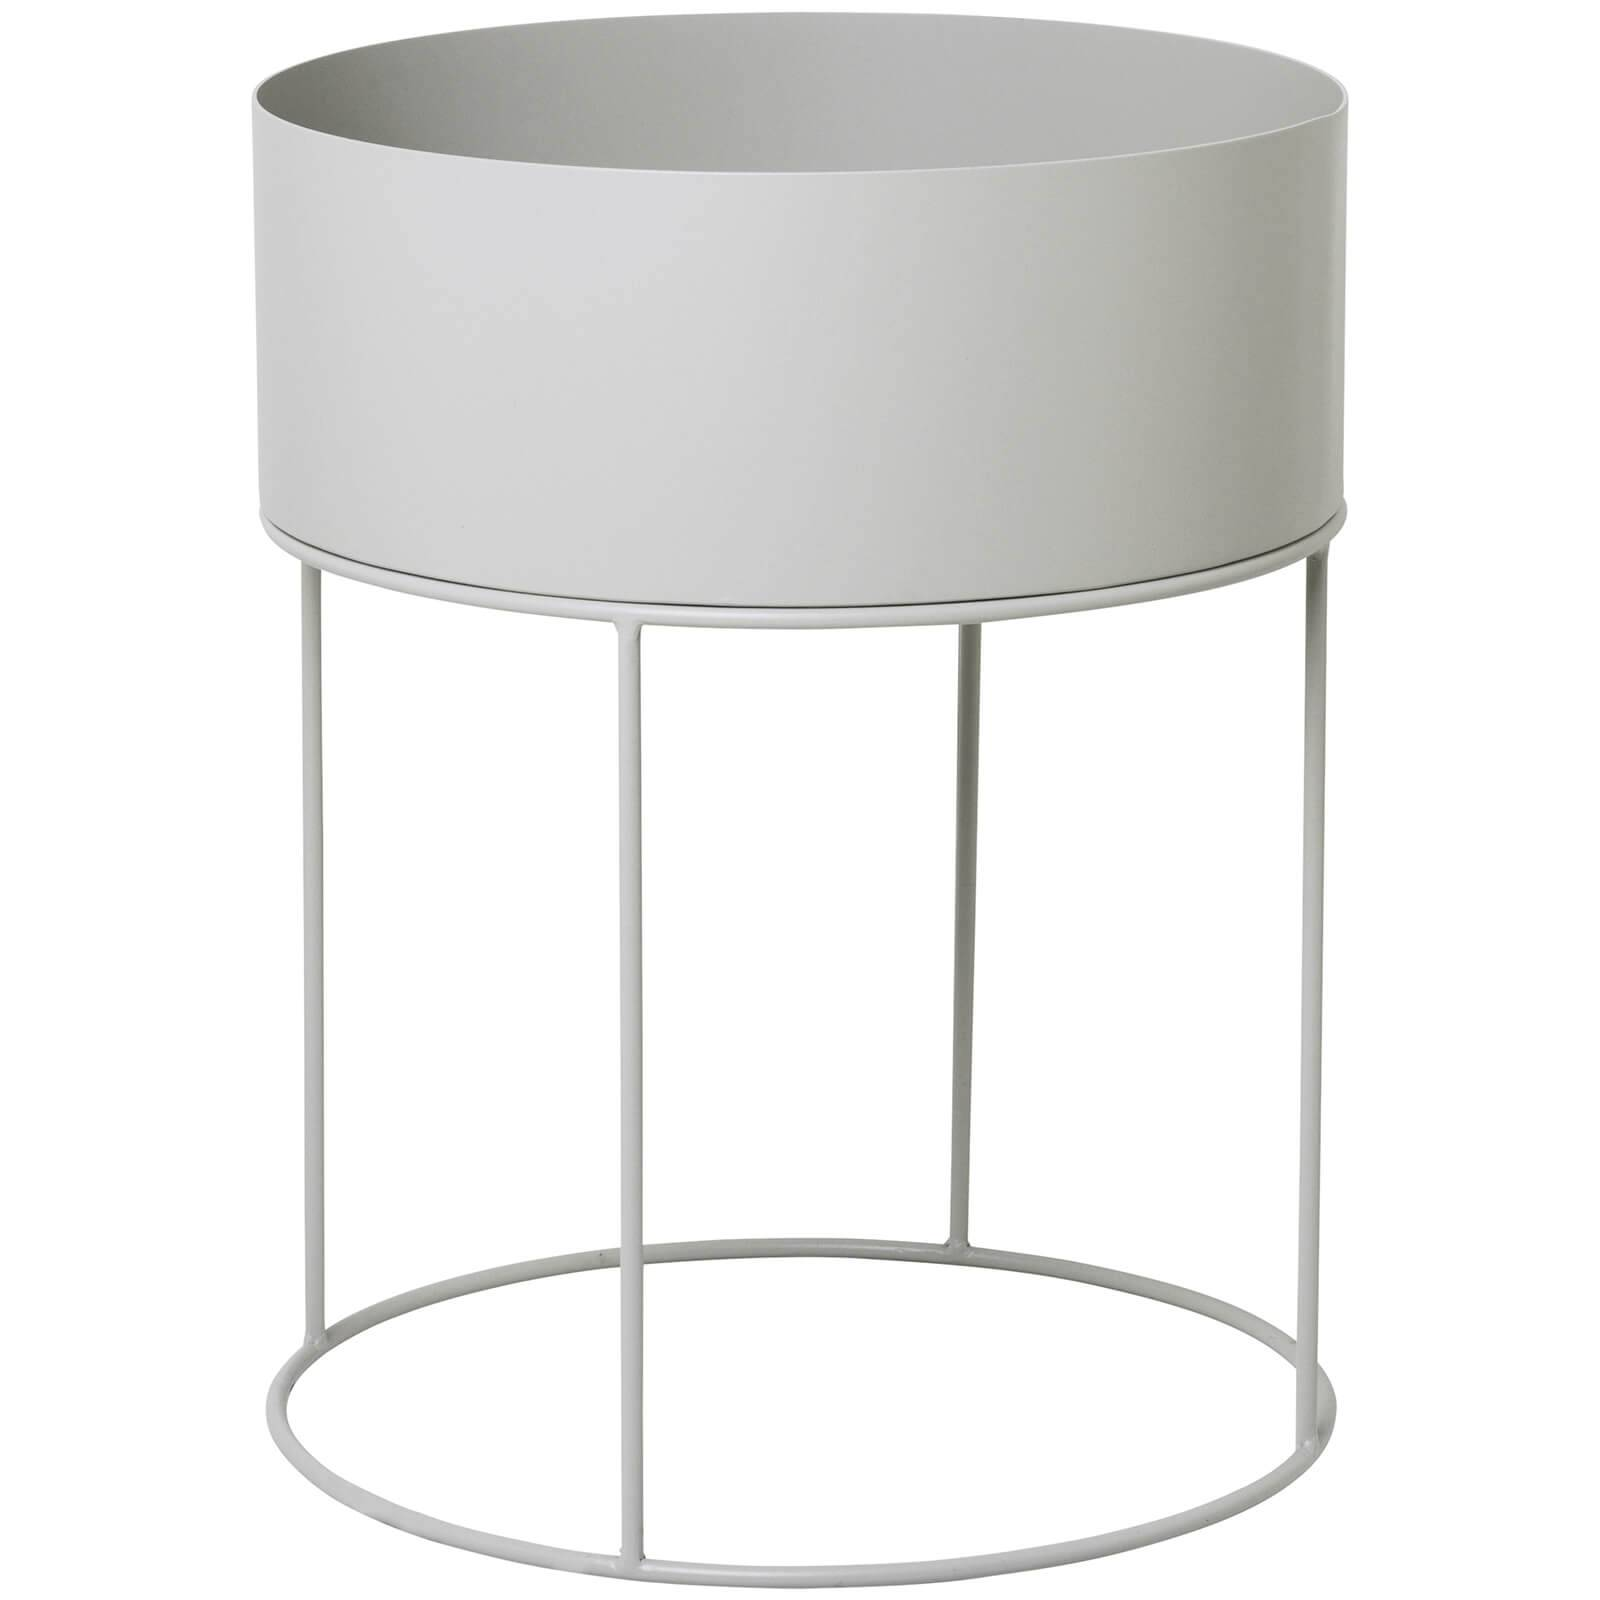 Ferm Living Plant Box and Side Table - Round - Light Grey